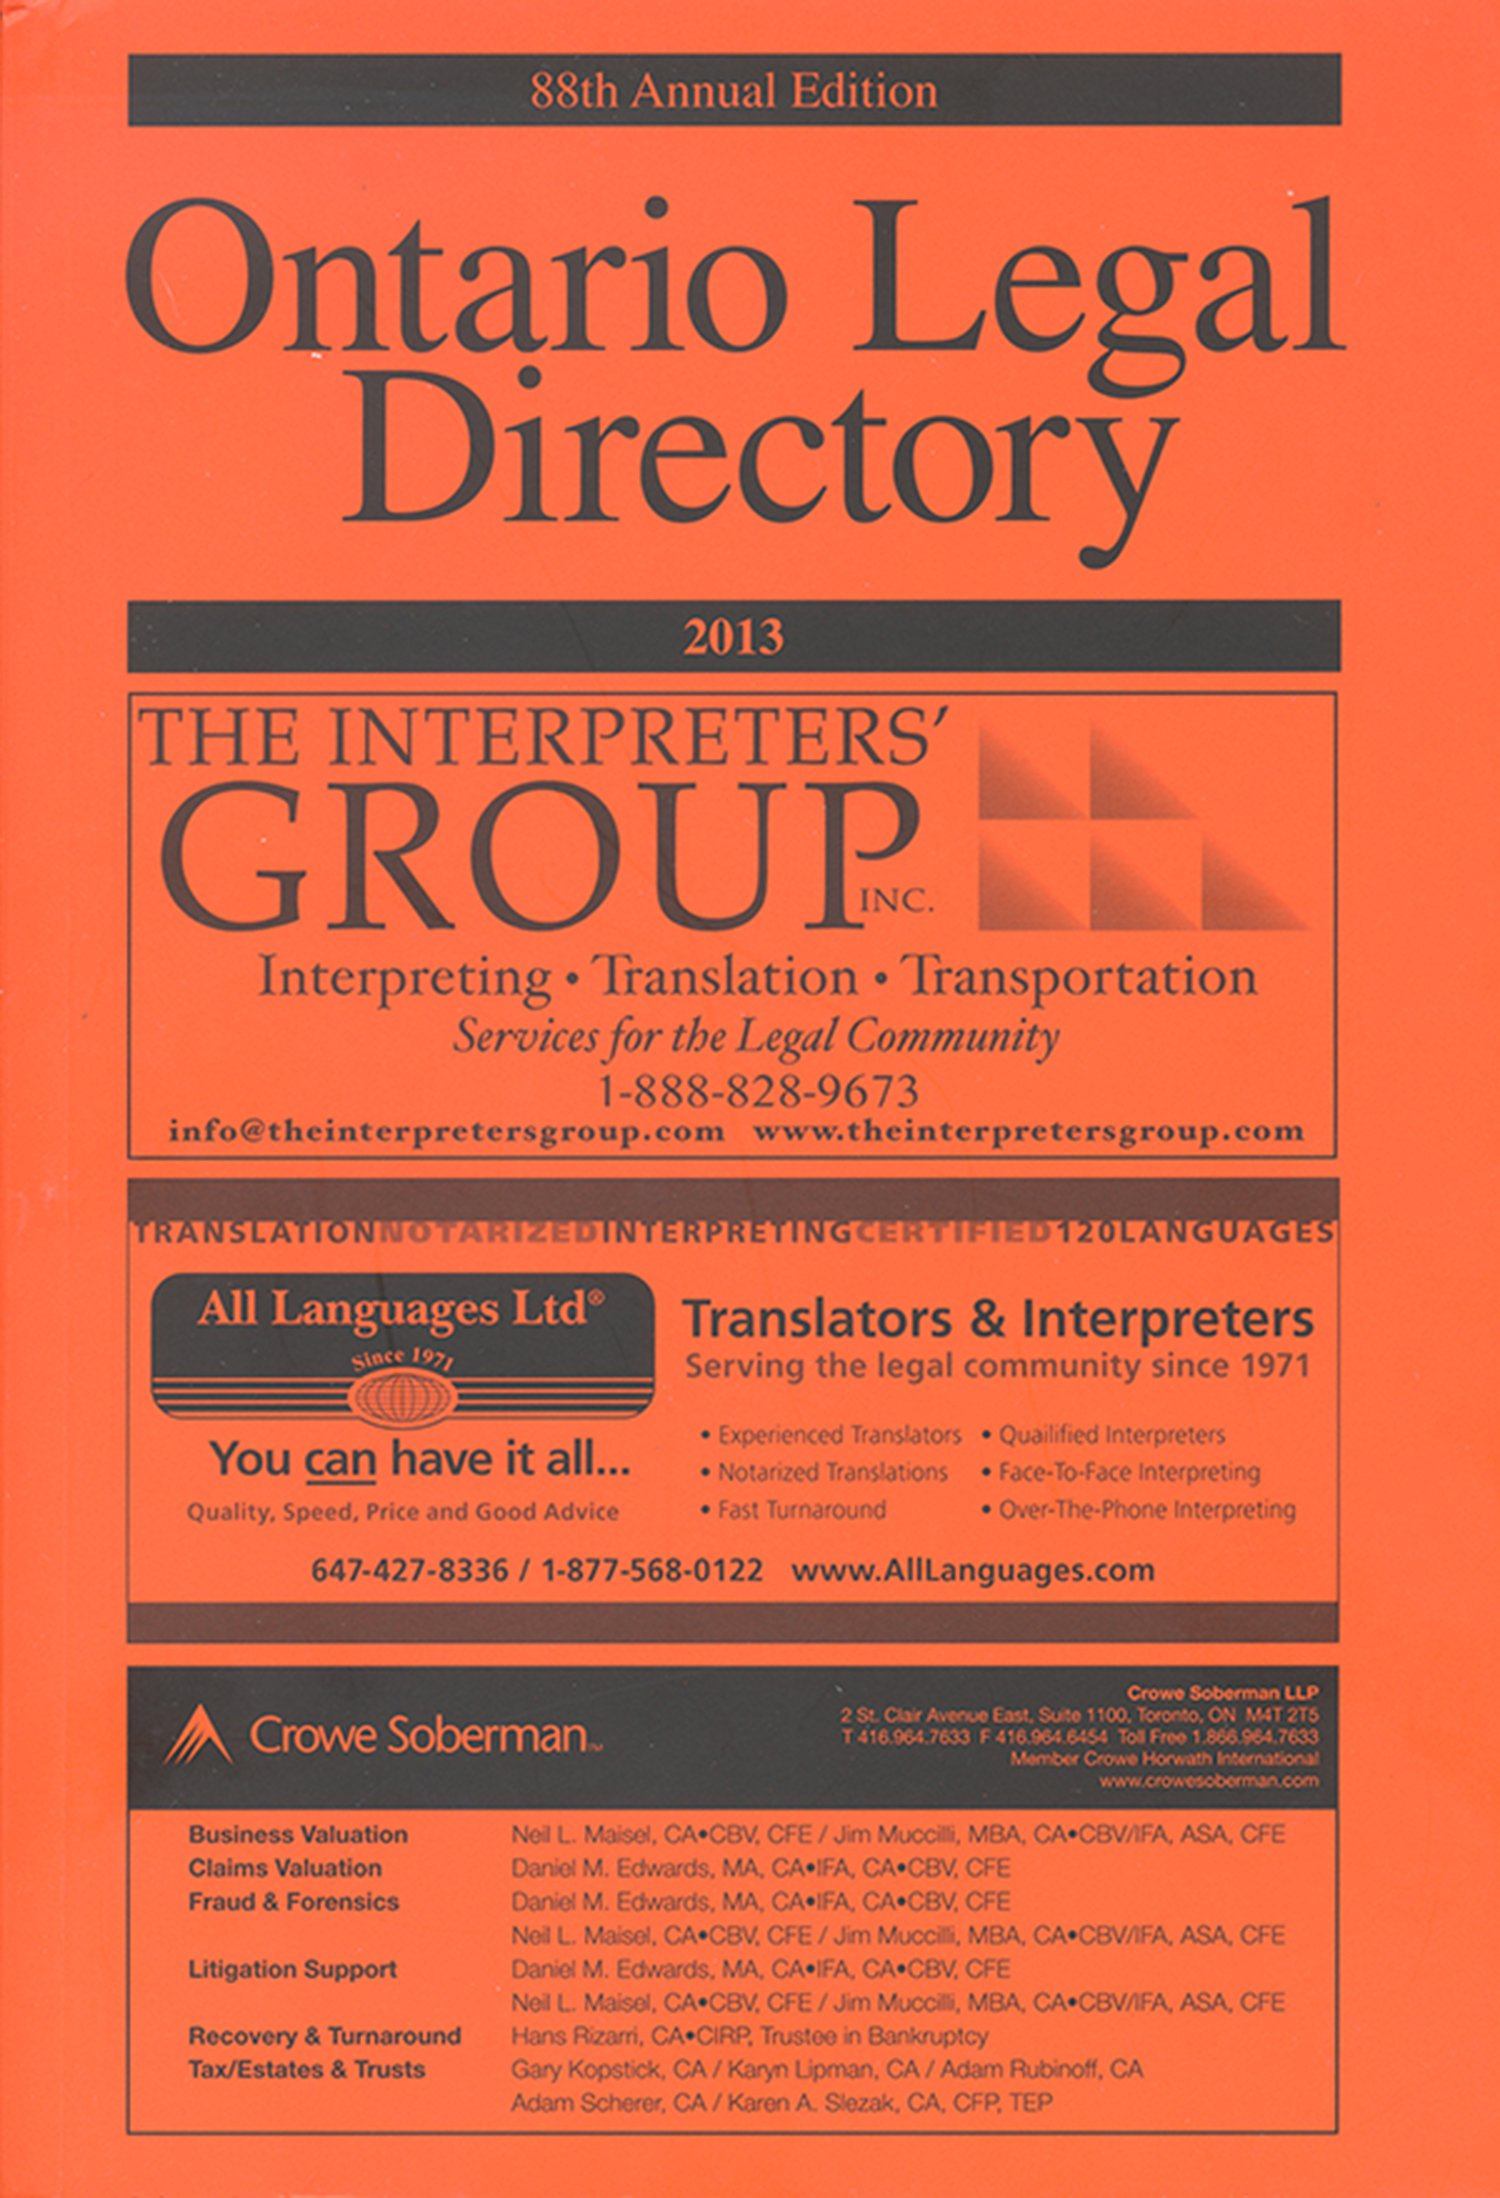 Ontario Legal Directory 2013 Published Annually Since 1925 Browne Lynn 9781442615403 Amazon Com Books